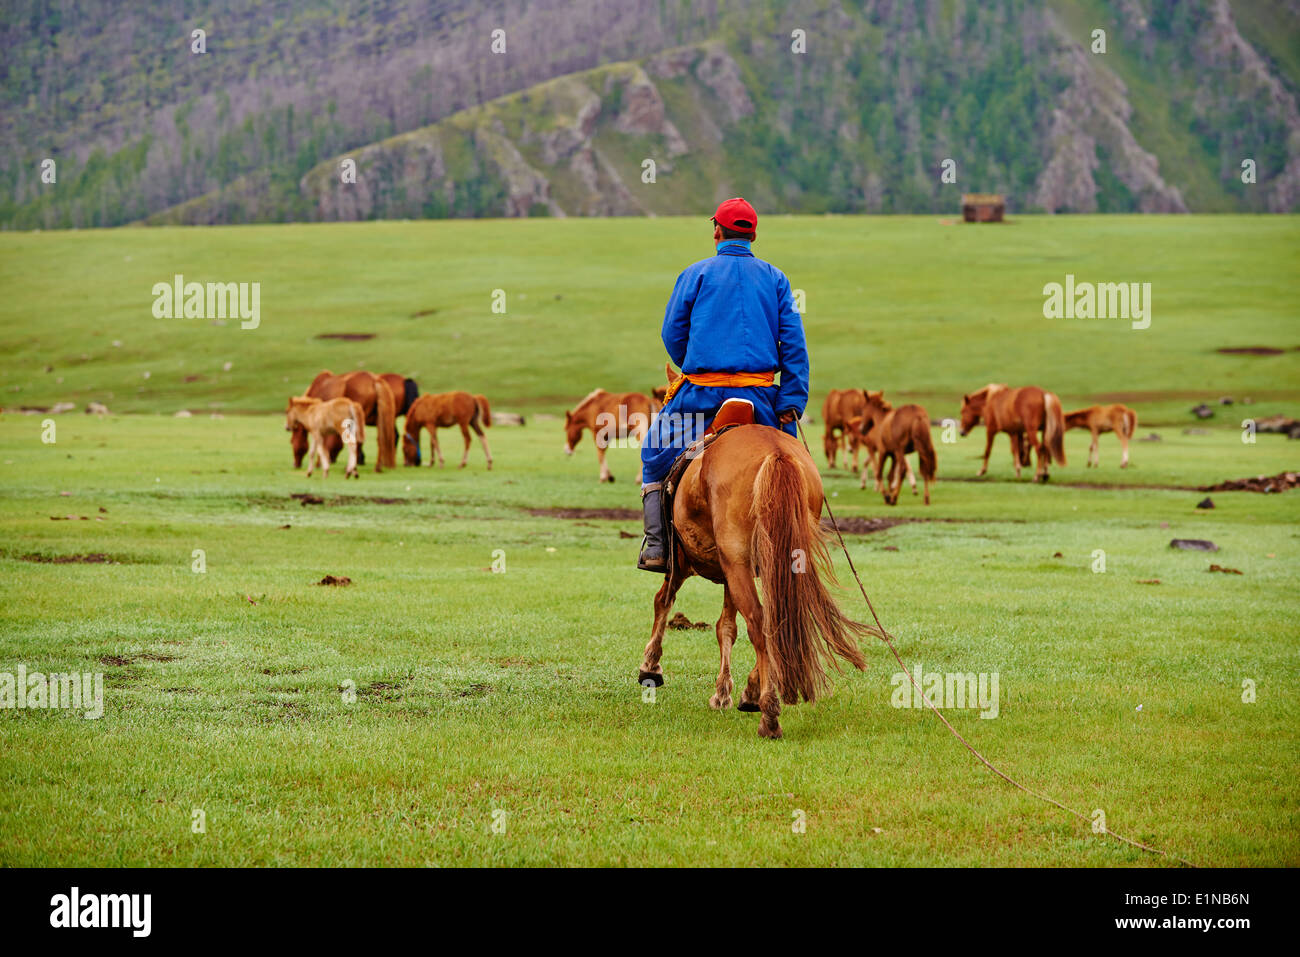 Mongolia, Ovorkhangai province, Orkhon valley, Nomad camp, Rallying of horses drove with Dorjdagva - Stock Image